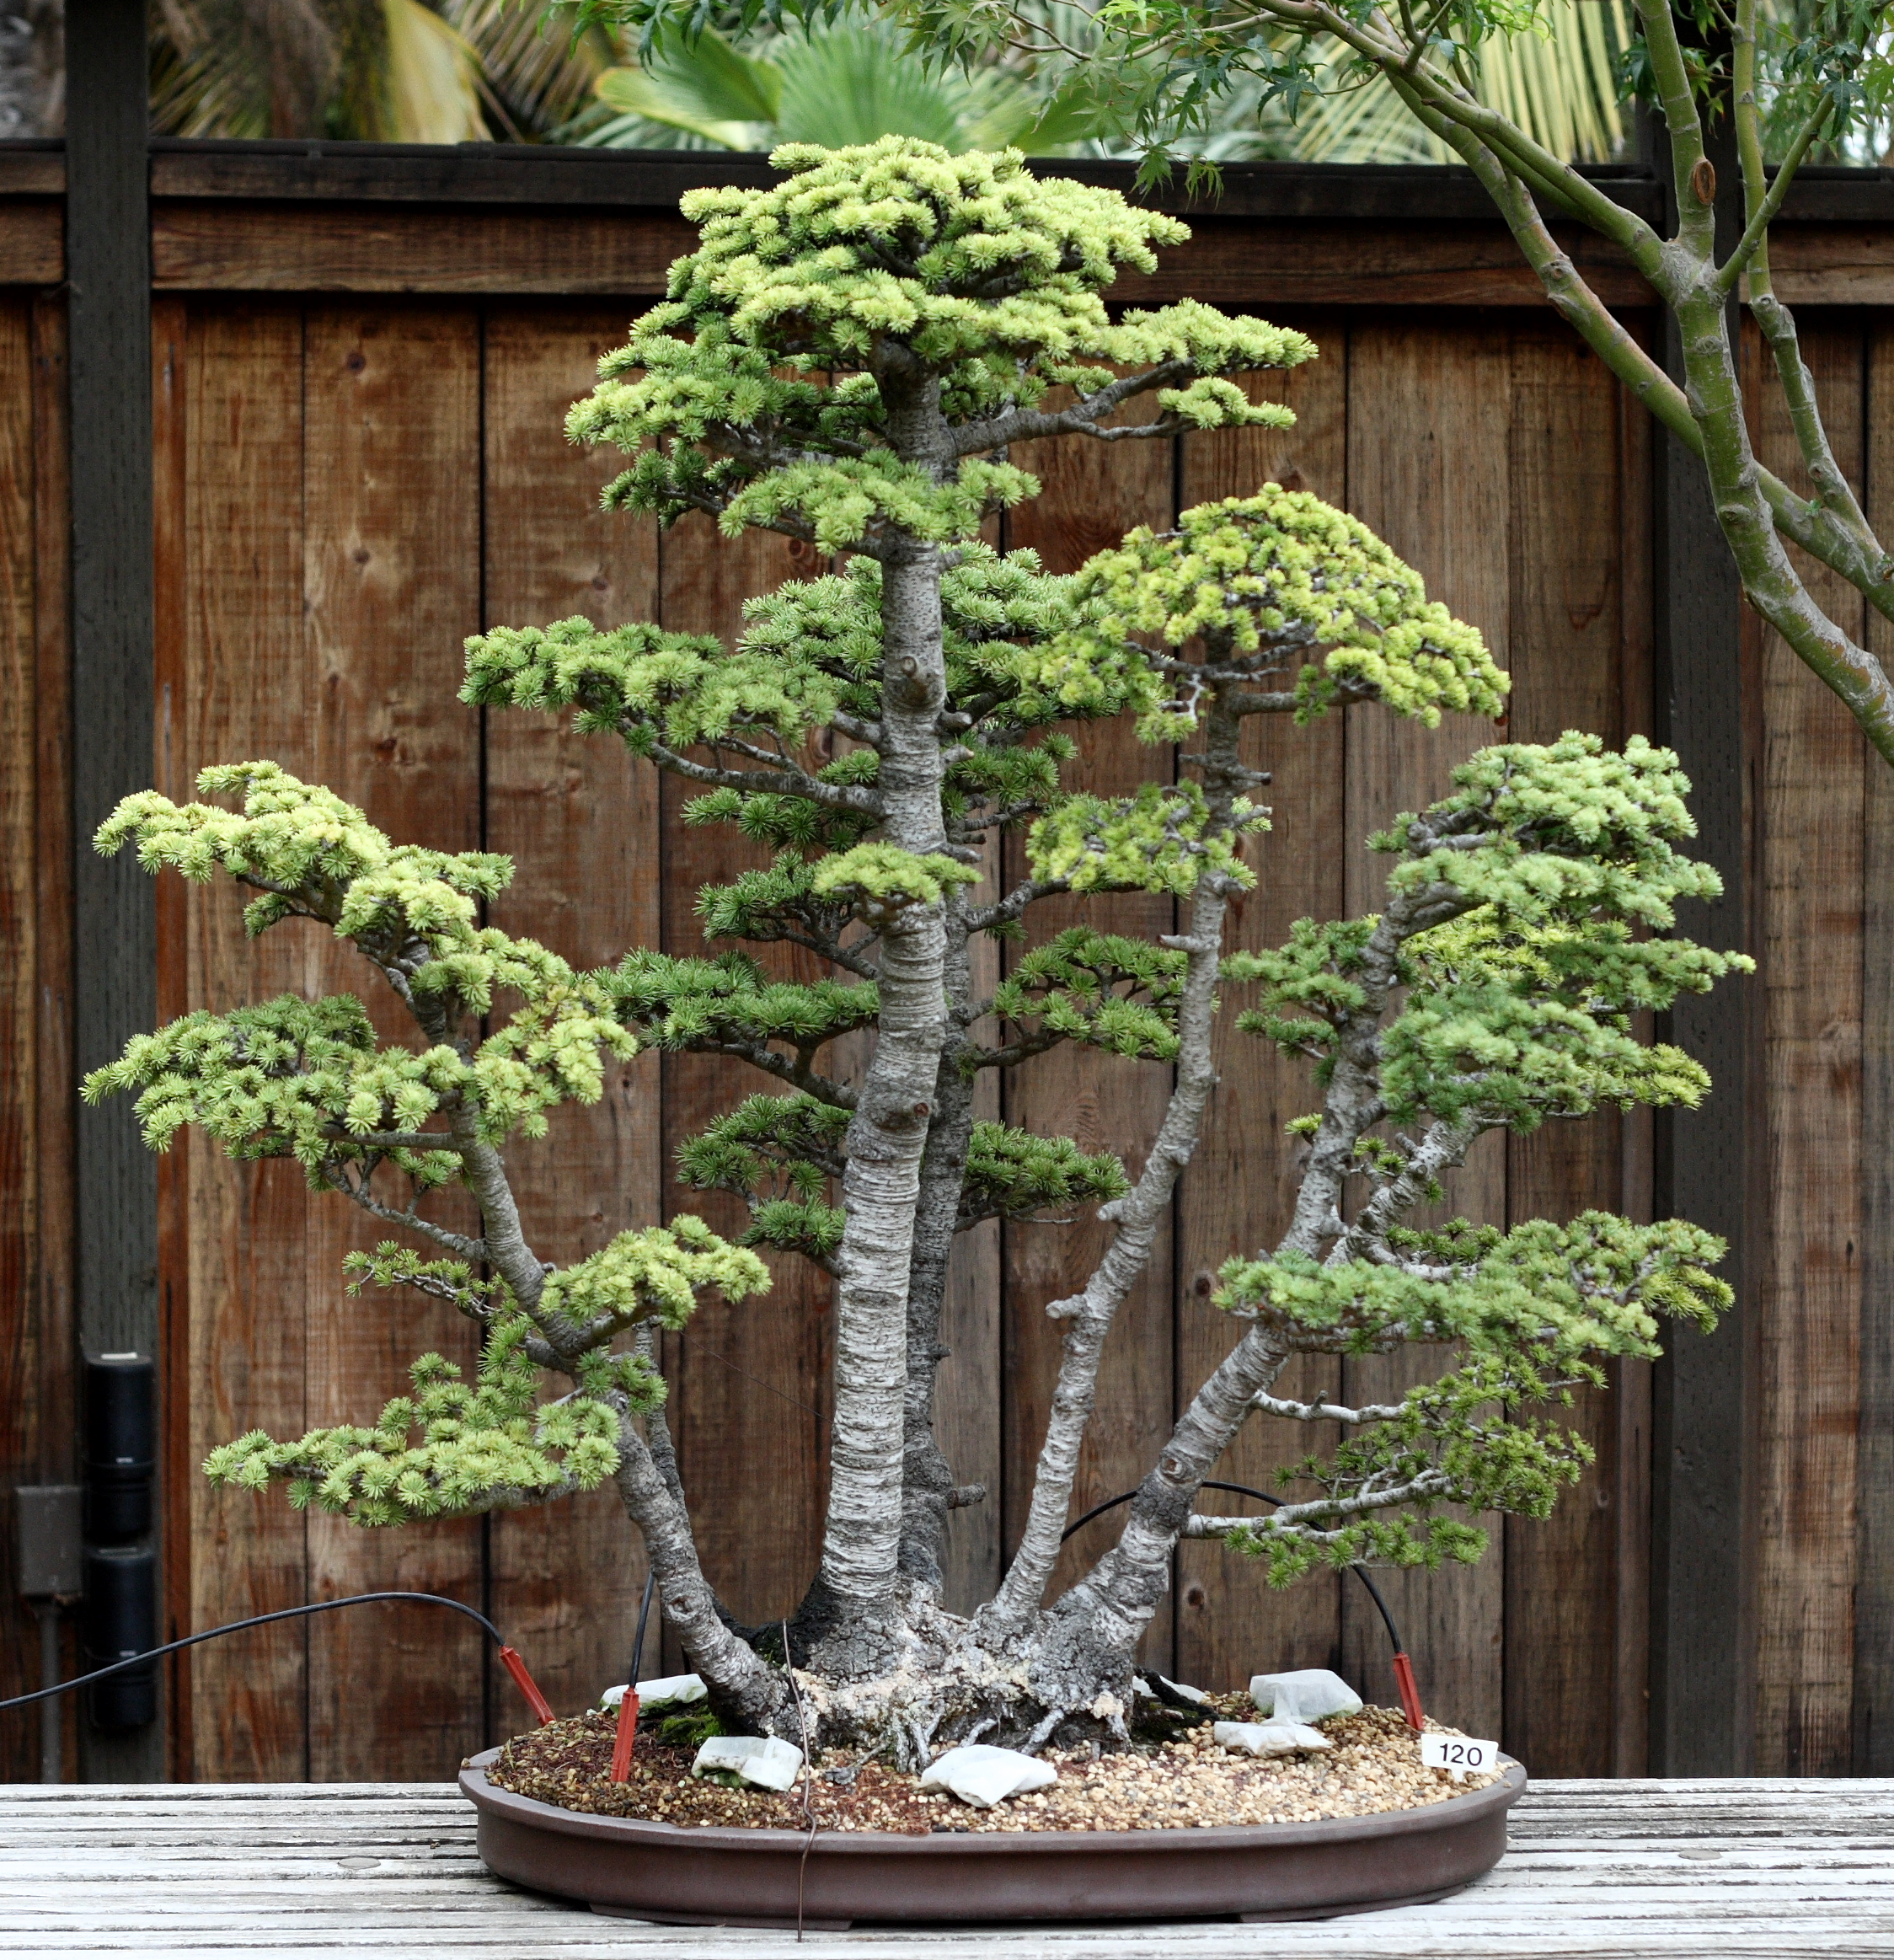 bonsai 120 of the golden state bonsai federation collection north in